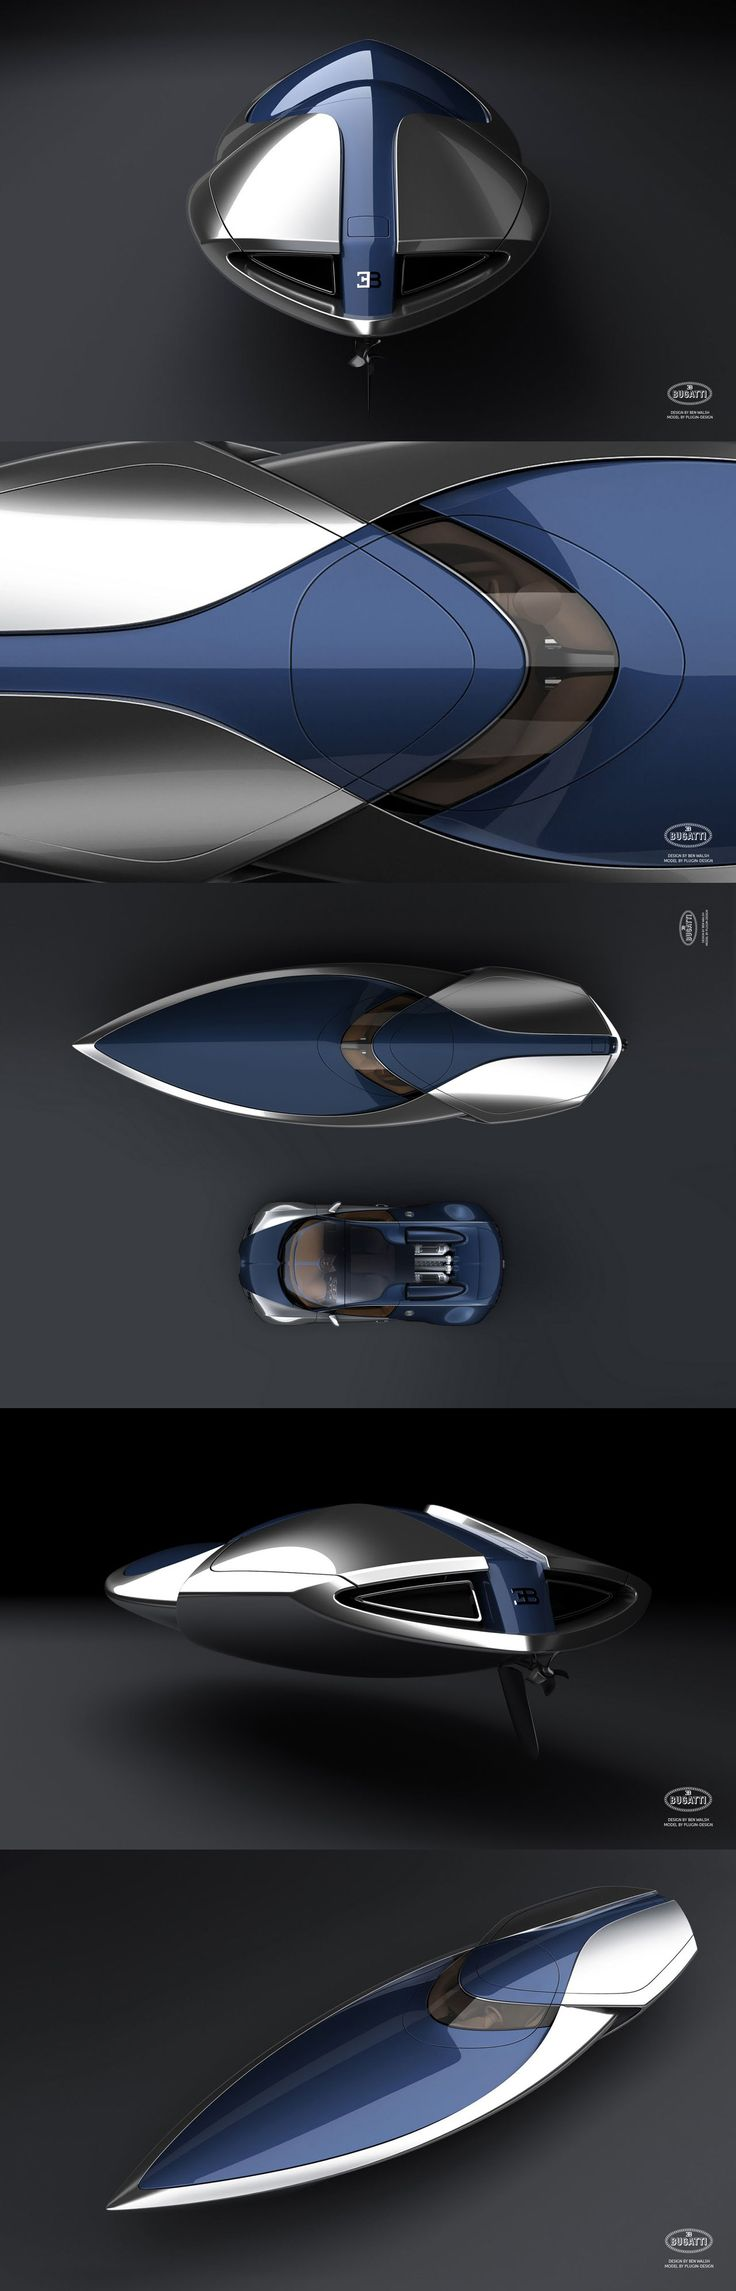 "Bugatti speedboat design inspired by ""Sang-Bleu"" colored Bugatti Veyron. The conceptual boat has a W16 Quad Turbo 1000HP engine.     - designed by Ben Walsh"